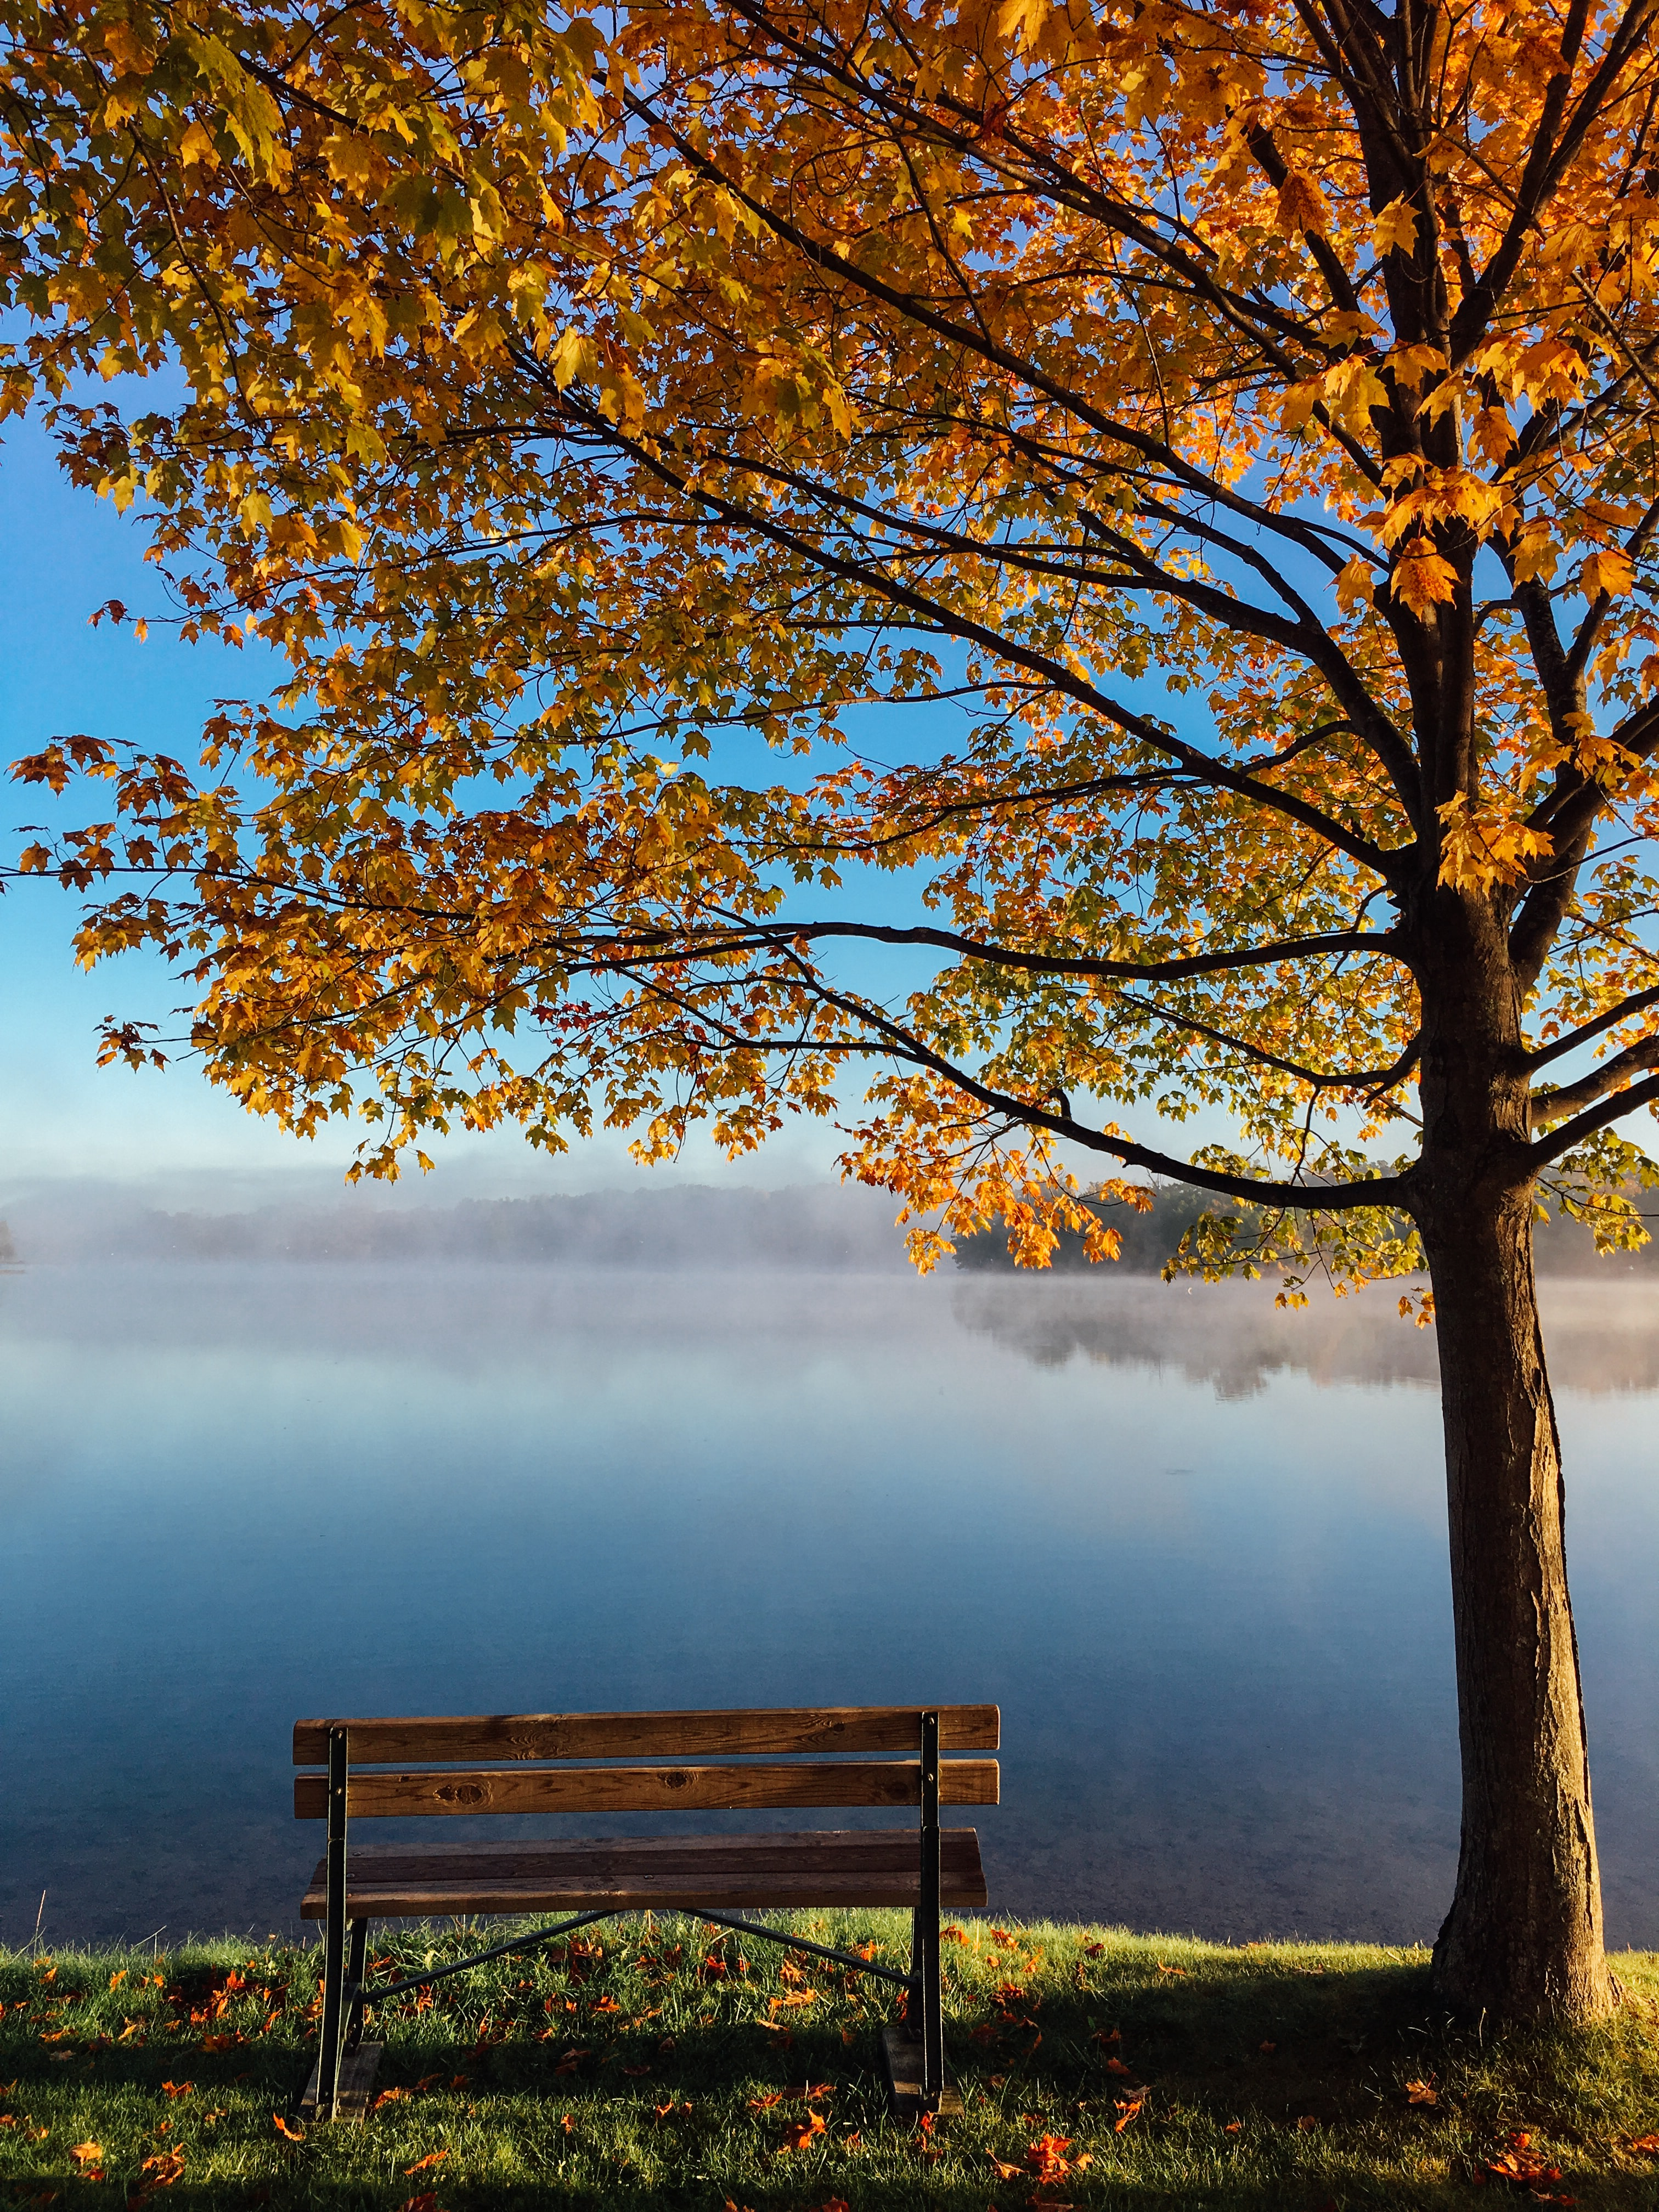 A wooden bench under an autumn tree right on the shore of a misty lake